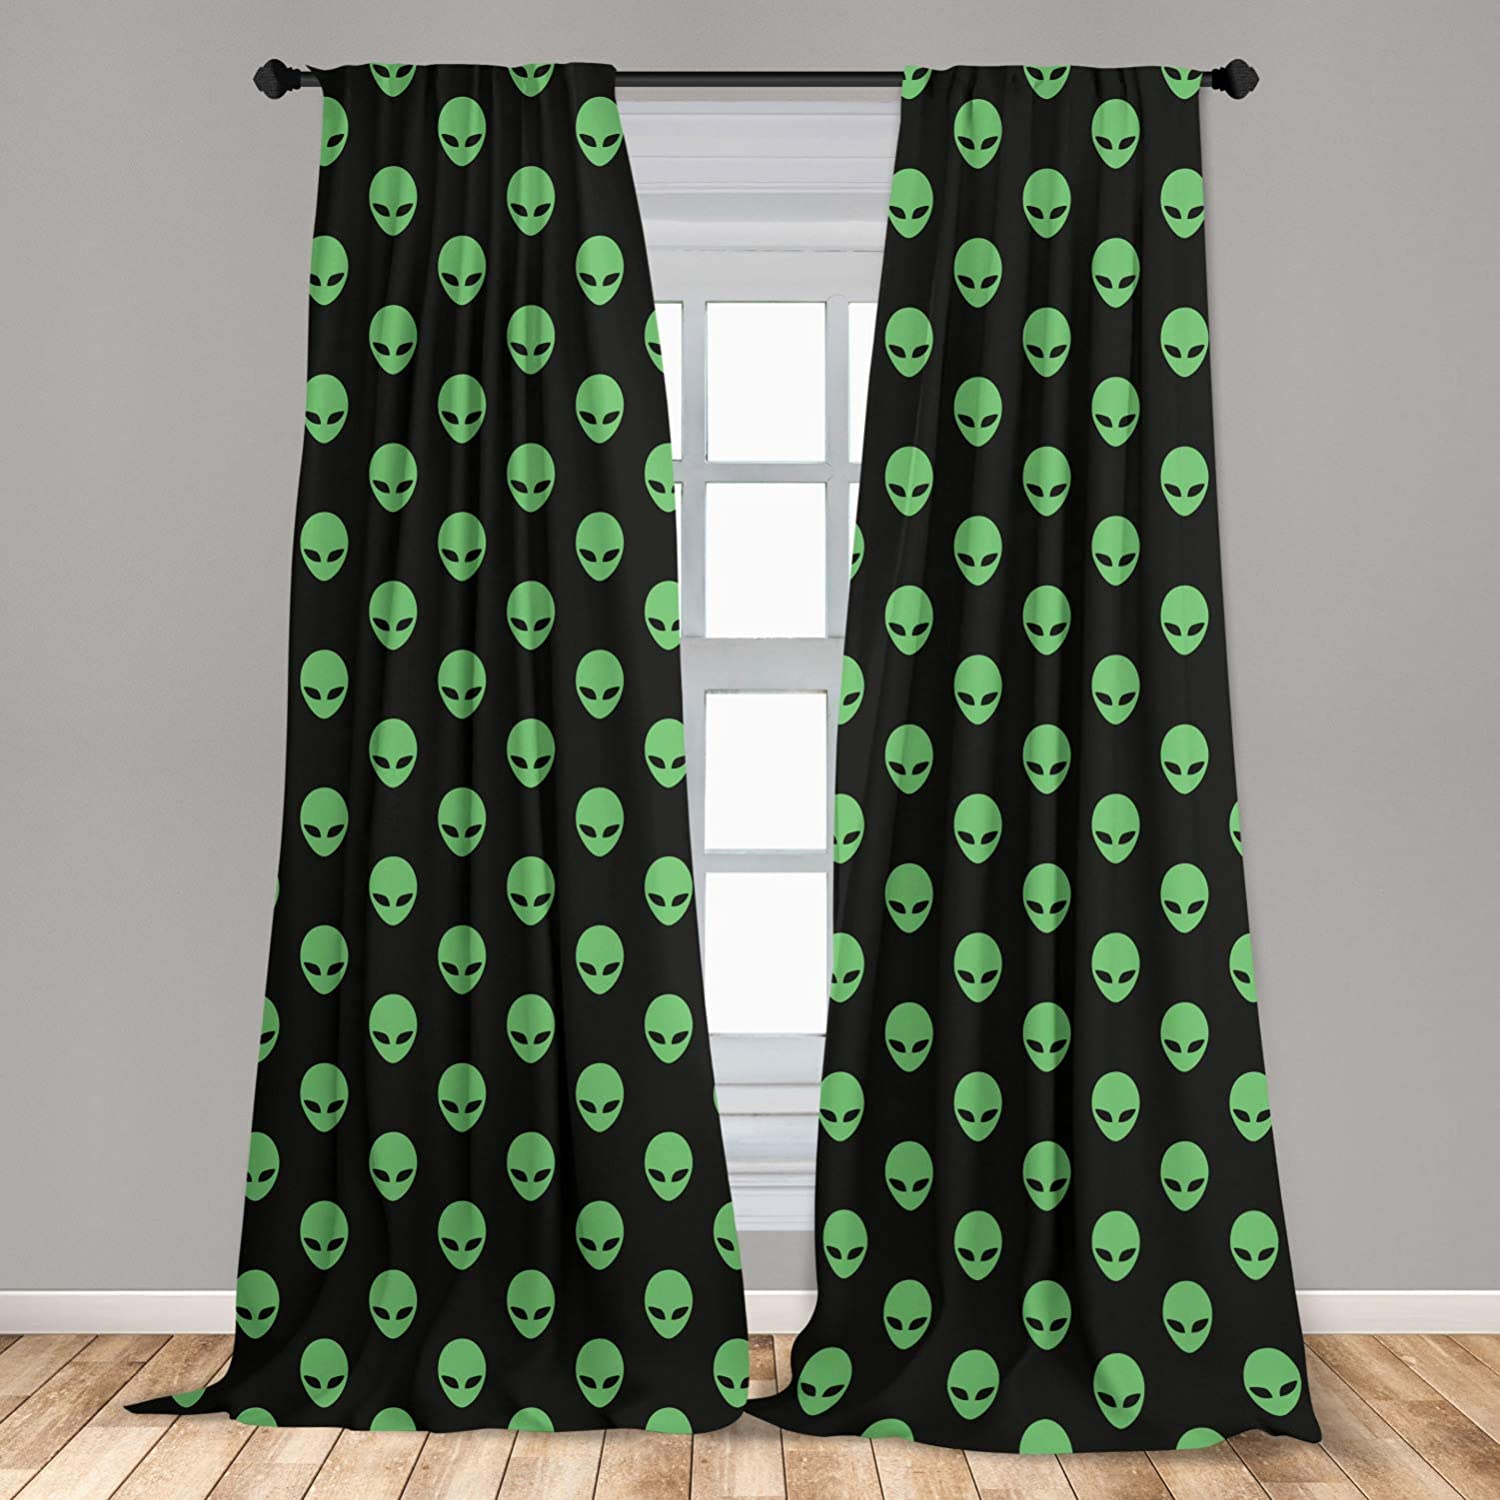 """Ambesonne Alien Window Curtains, Supernatural Martiansal Beings from Other Planets Head of an Alien, Lightweight Decorative Panels Set of 2 with Rod Pocket, 56"""" x 63"""", Fern Green"""